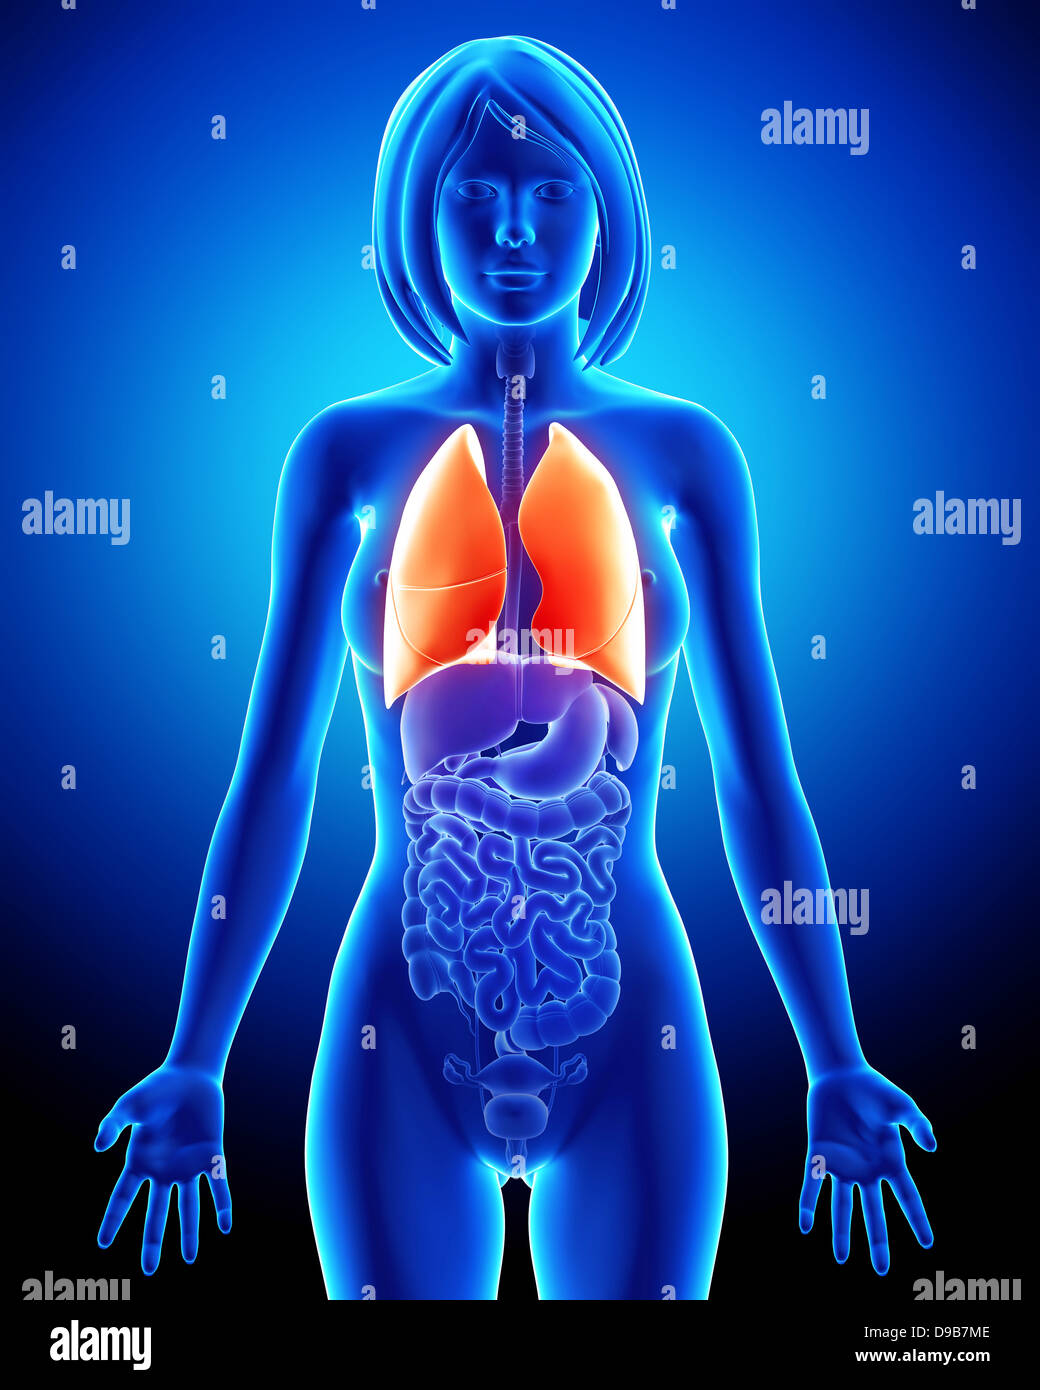 Organs Of The Respiratory System Imágenes De Stock & Organs Of The ...